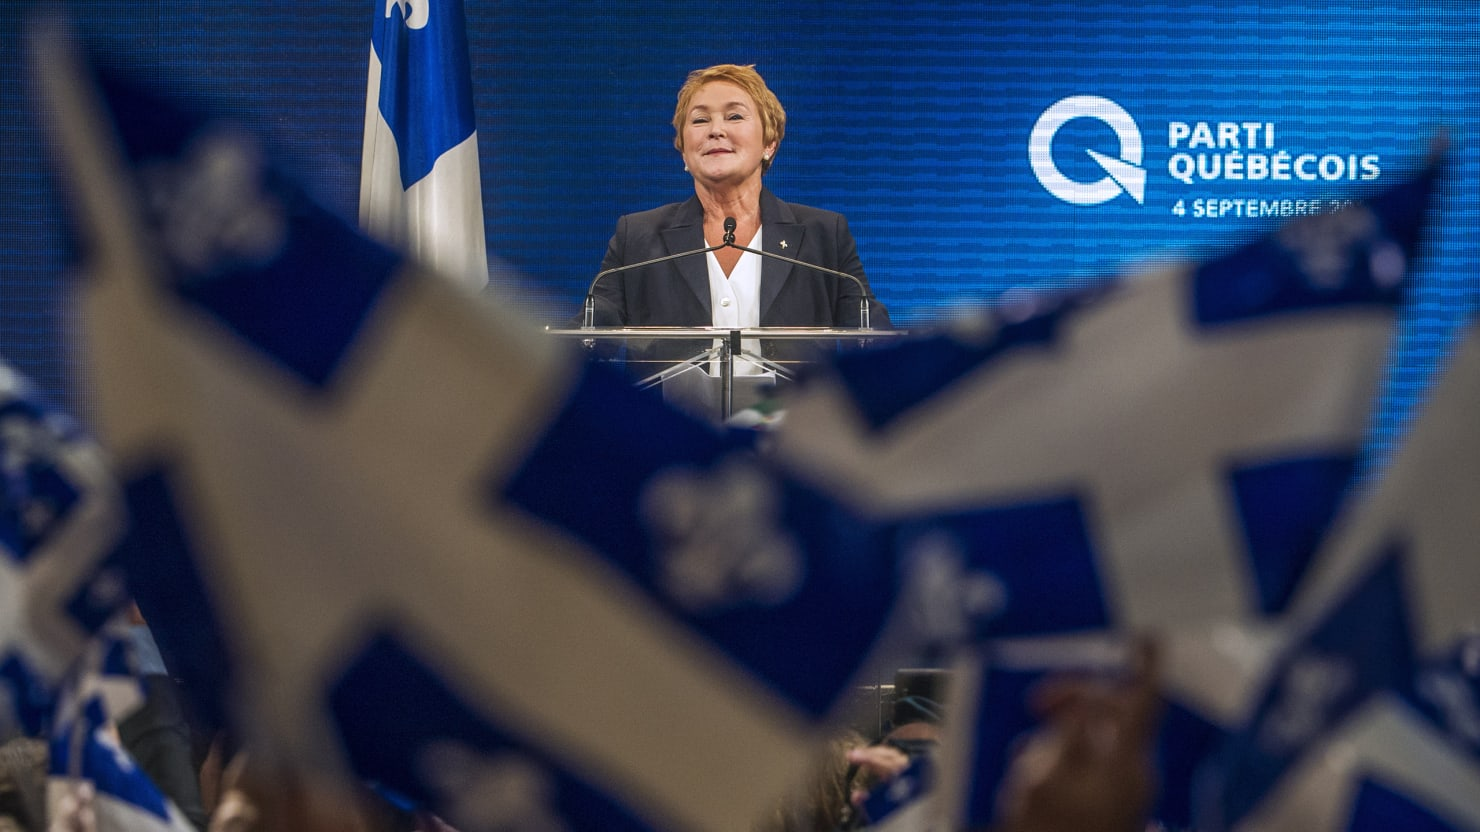 quebec charter of values Canadian law and religion: the québec charter of values bill 60: the québec charter of values one the most well-known religious policy controversies in recent canadian history is québec's charter of values.